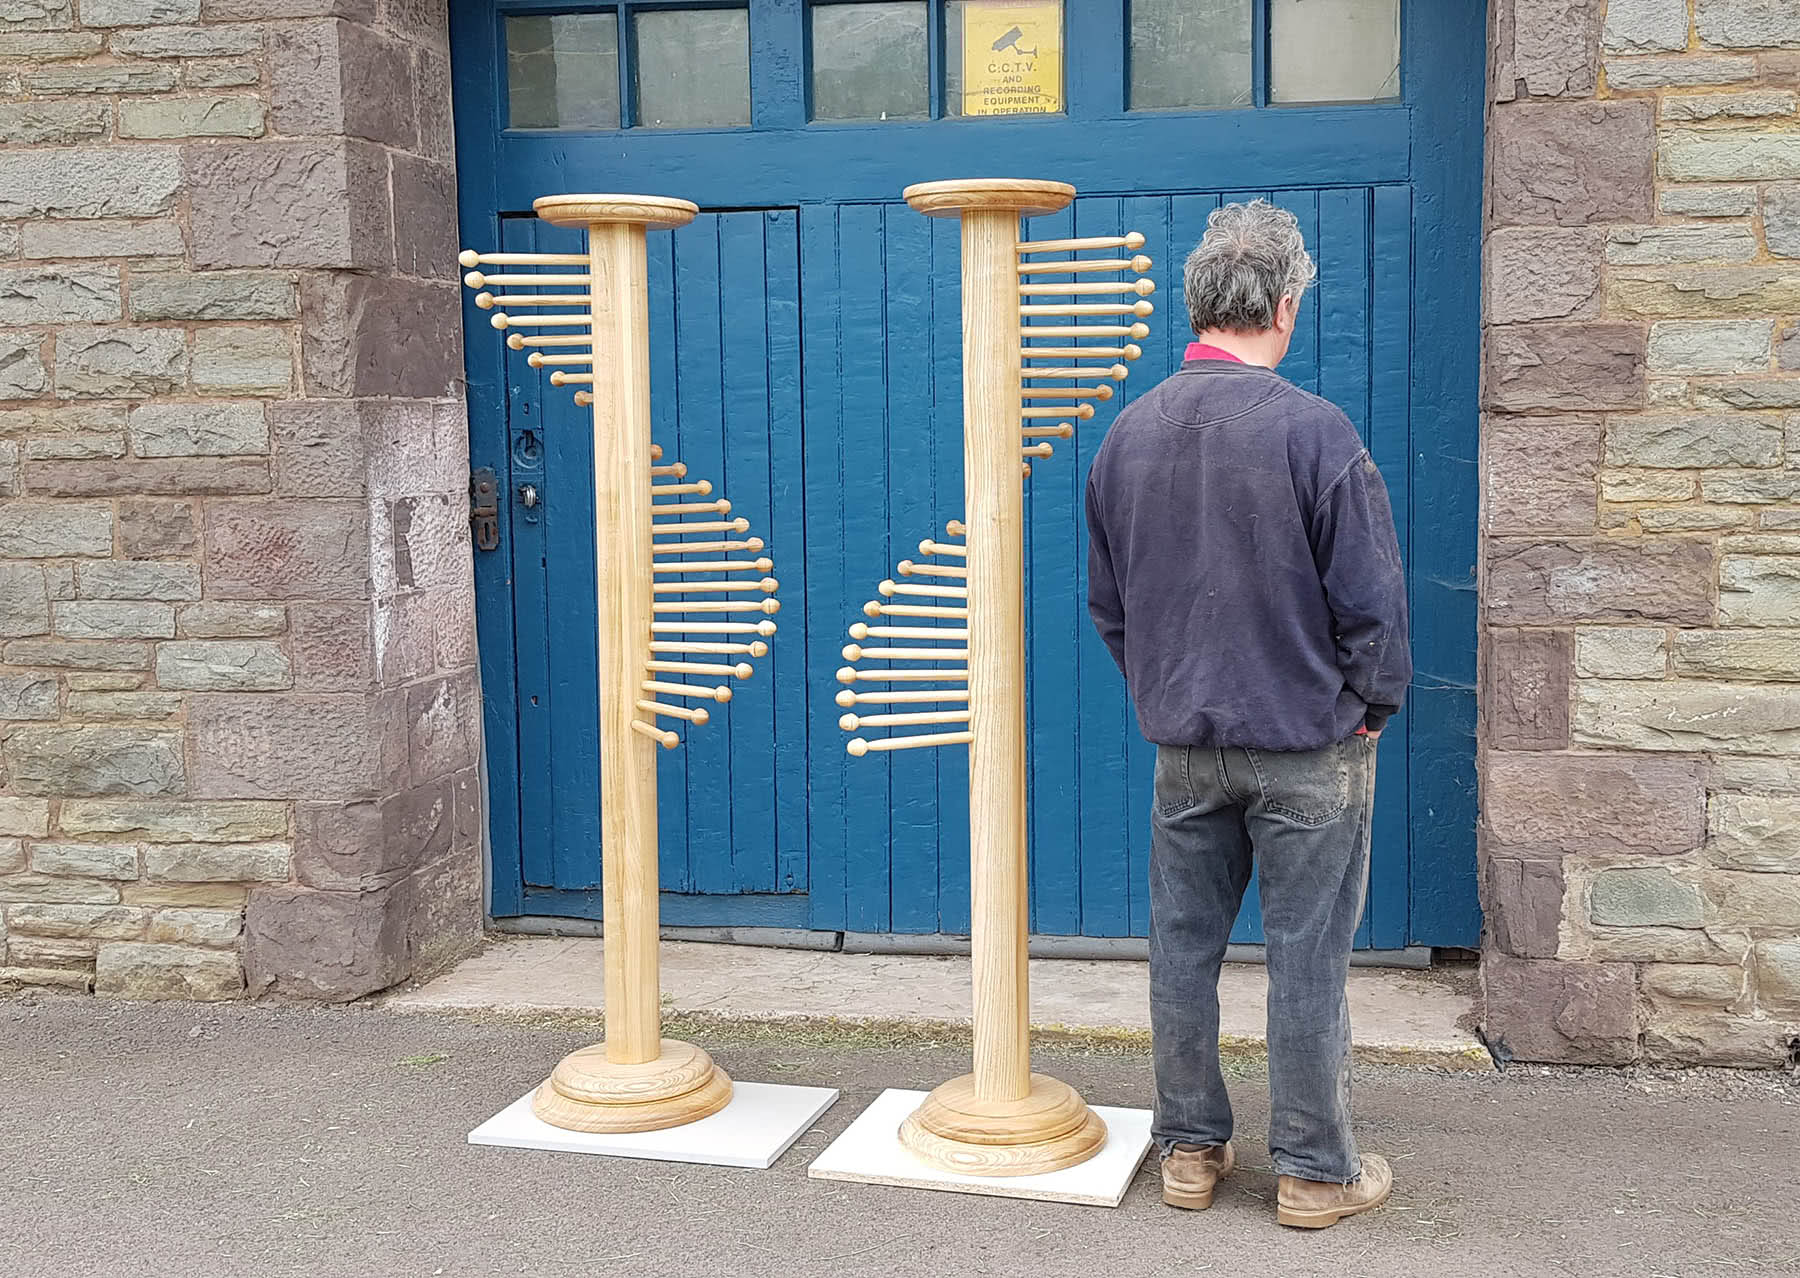 Pair of handmade belt/scarf stands outside of workshop with man standing near for size comparison